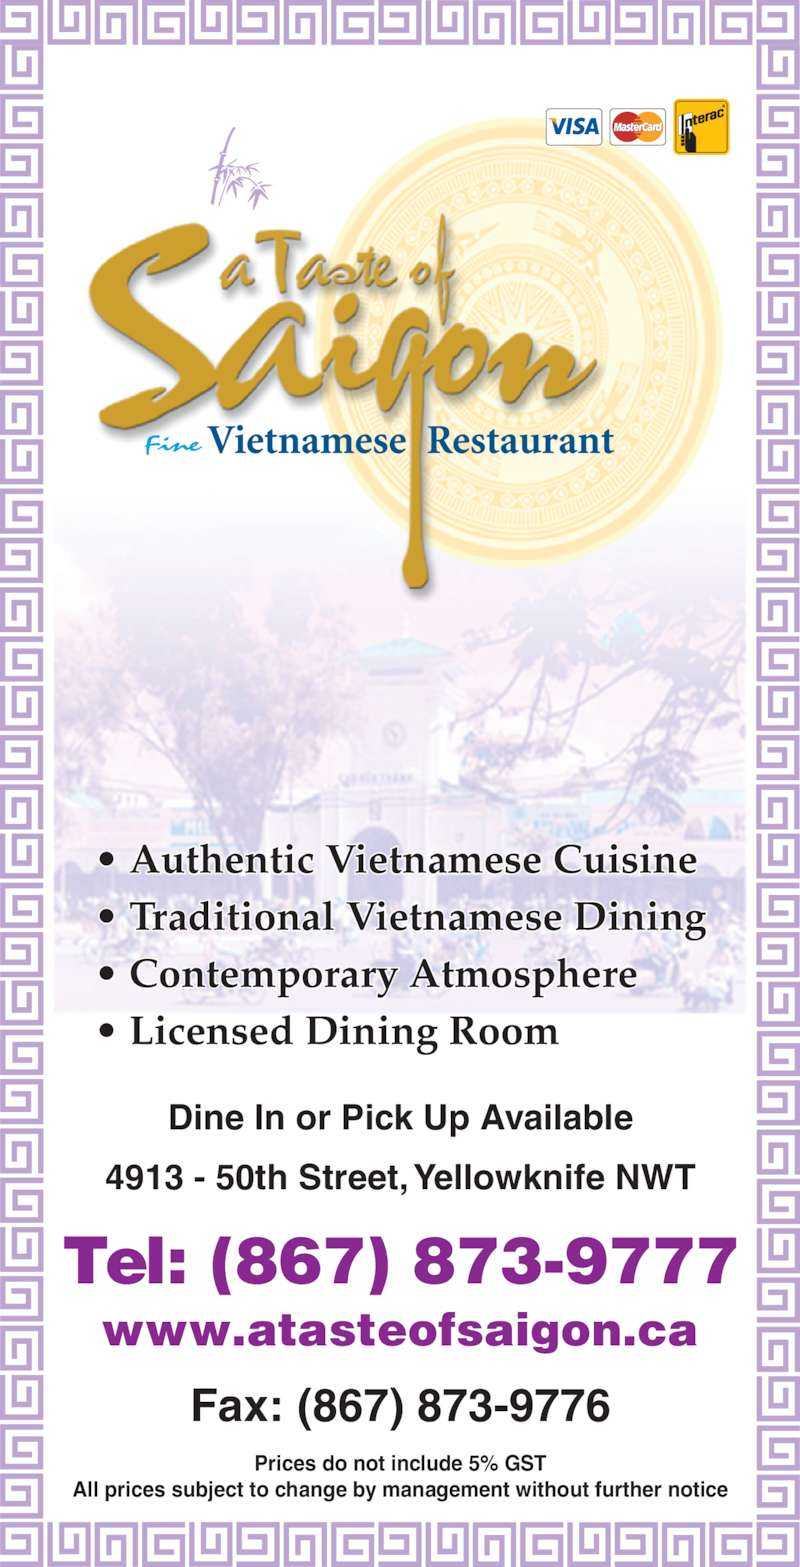 A Taste Of Saigon (867-873-9777) - Display Ad - • Authentic Vietnamese Cuisine • Traditional Vietnamese Dining • Contemporary Atmosphere • Licensed Dining Room 4913 - 50th Street, Yellowknife NWT Dine In or Pick Up Available Tel: (867) 873-9777 Fax: (867) 873-9776 www.atasteofsaigon.ca Prices do not include 5% GST All prices subject to change by management without further notice